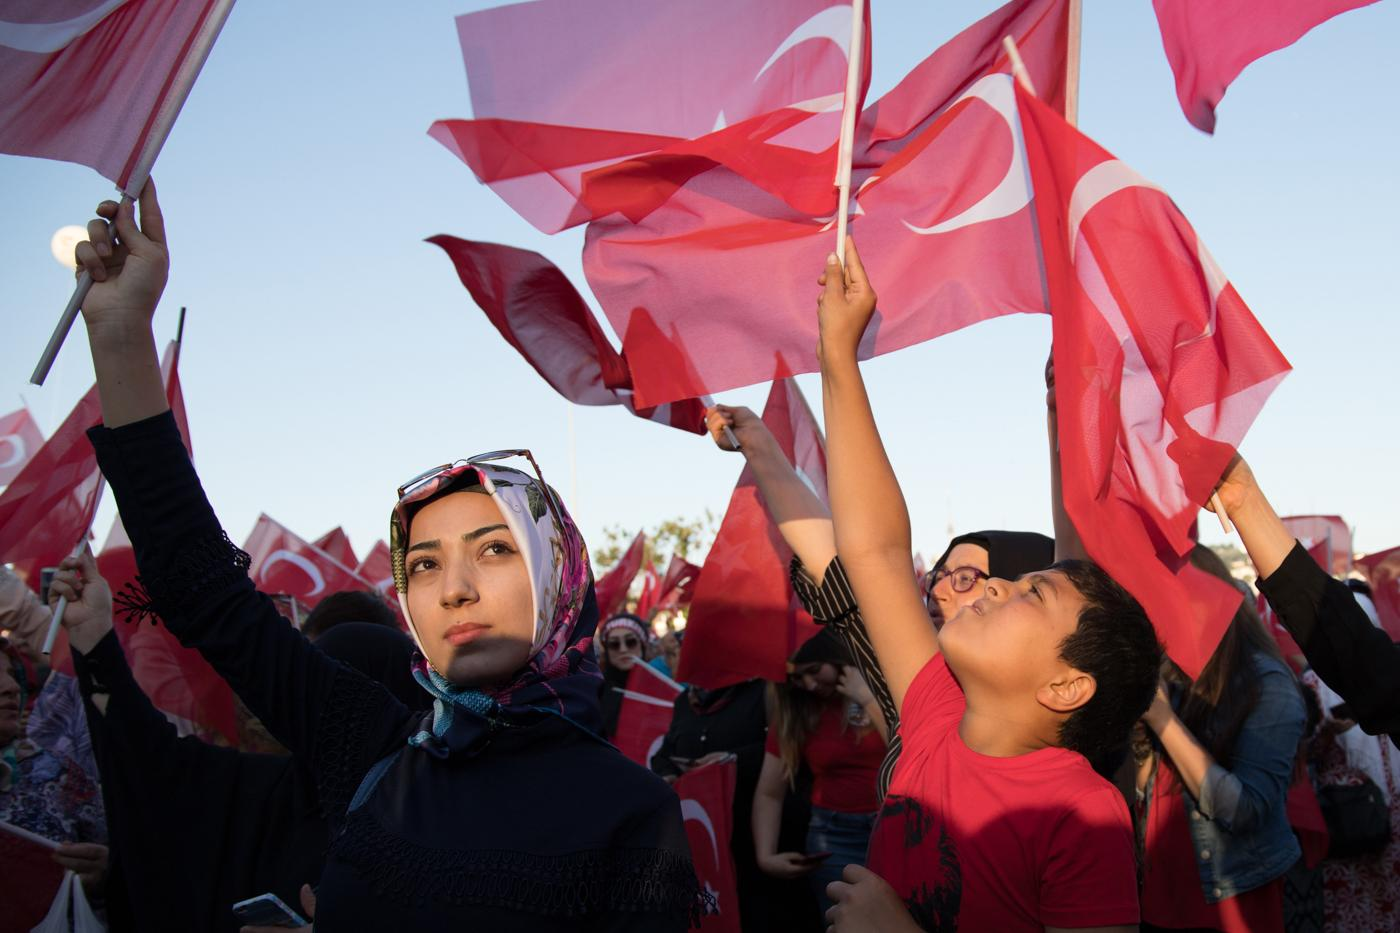 Commemoration of the failed coup attempt on the Bosphorus Bridge, Istanbul, July 15, 2018. In the past five years, the Turkish people have experienced six elections, an attempted coup, two years under a state of emergency, and a referendum followed by the establishment of a presidential regime. Re-elected for five years as the head of Turkey, Recep Tayyip Erdoğan now holds full power until 2023.